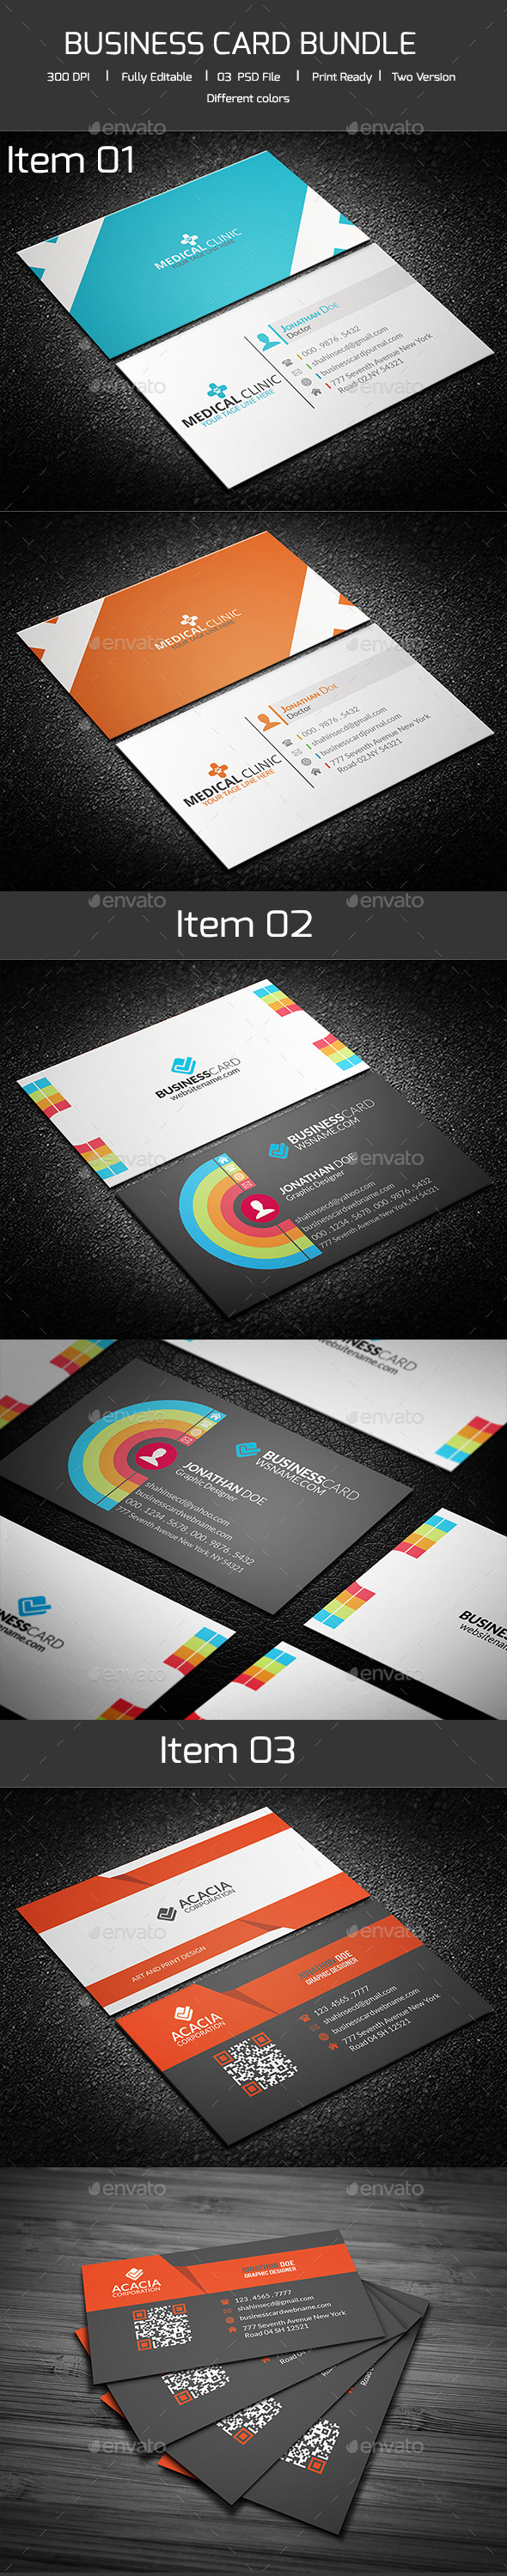 Bundle-02 Business Card (3 in 1) - Corporate Business Cards